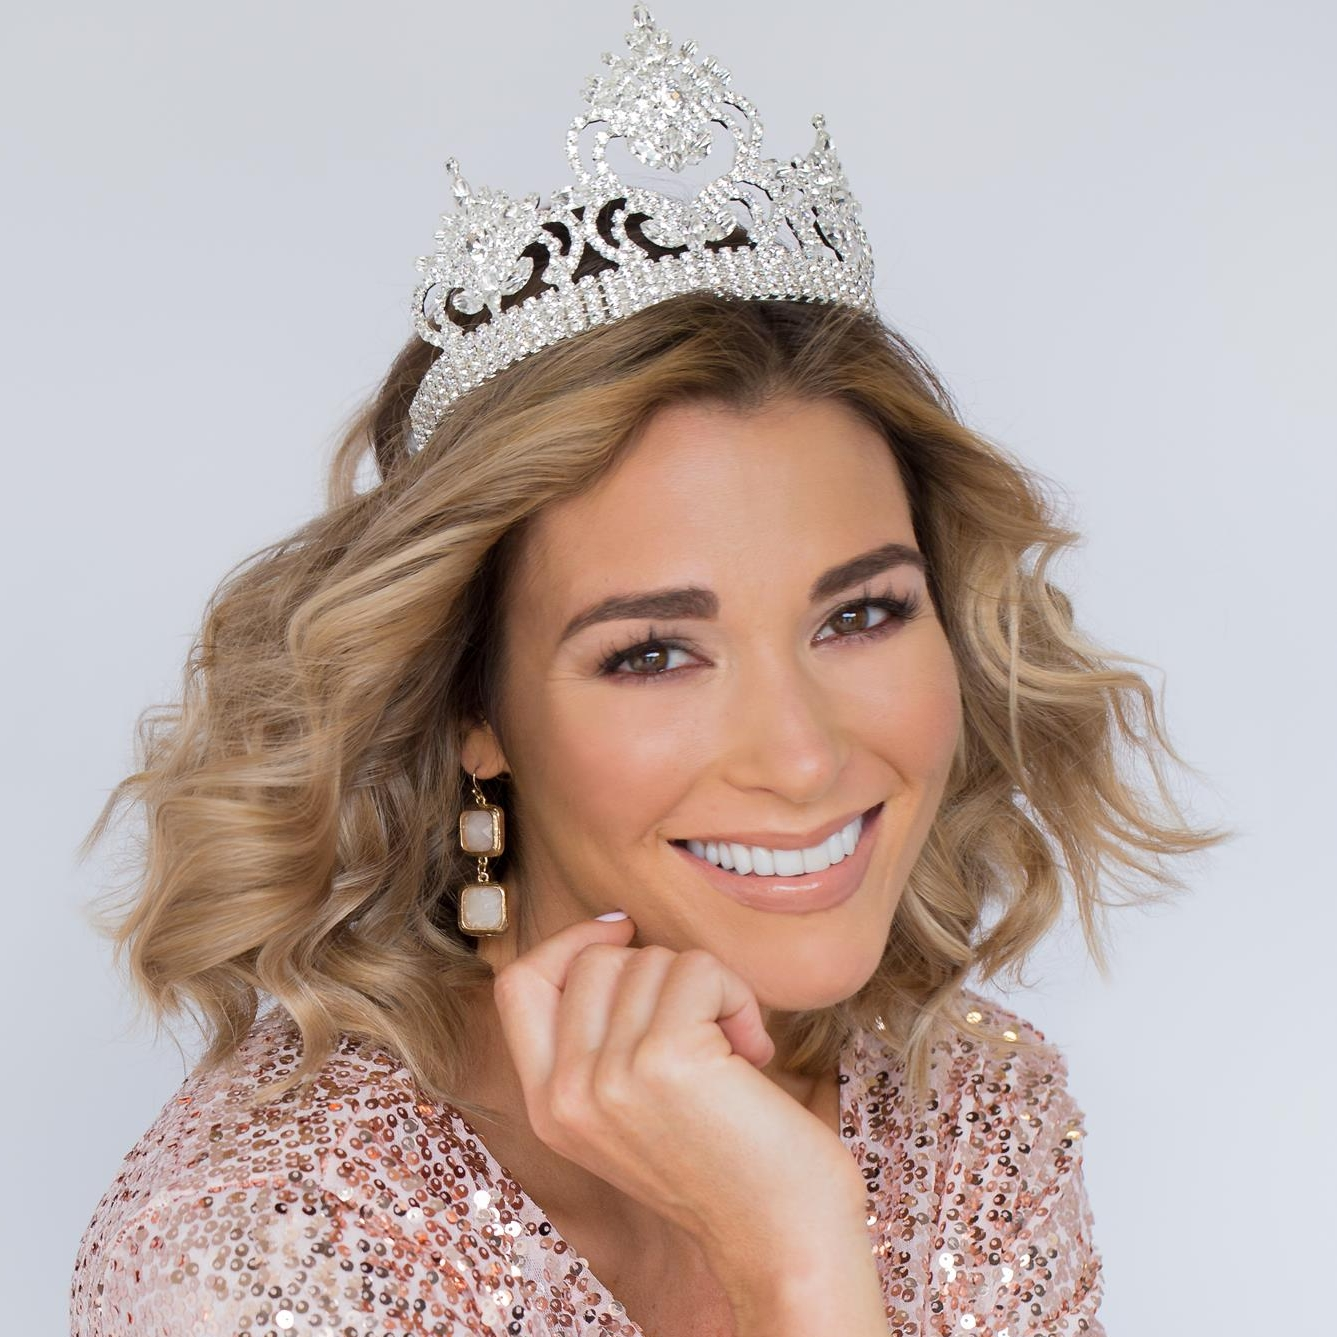 Mrs. North Carolina 2017 - Wendy Jordan